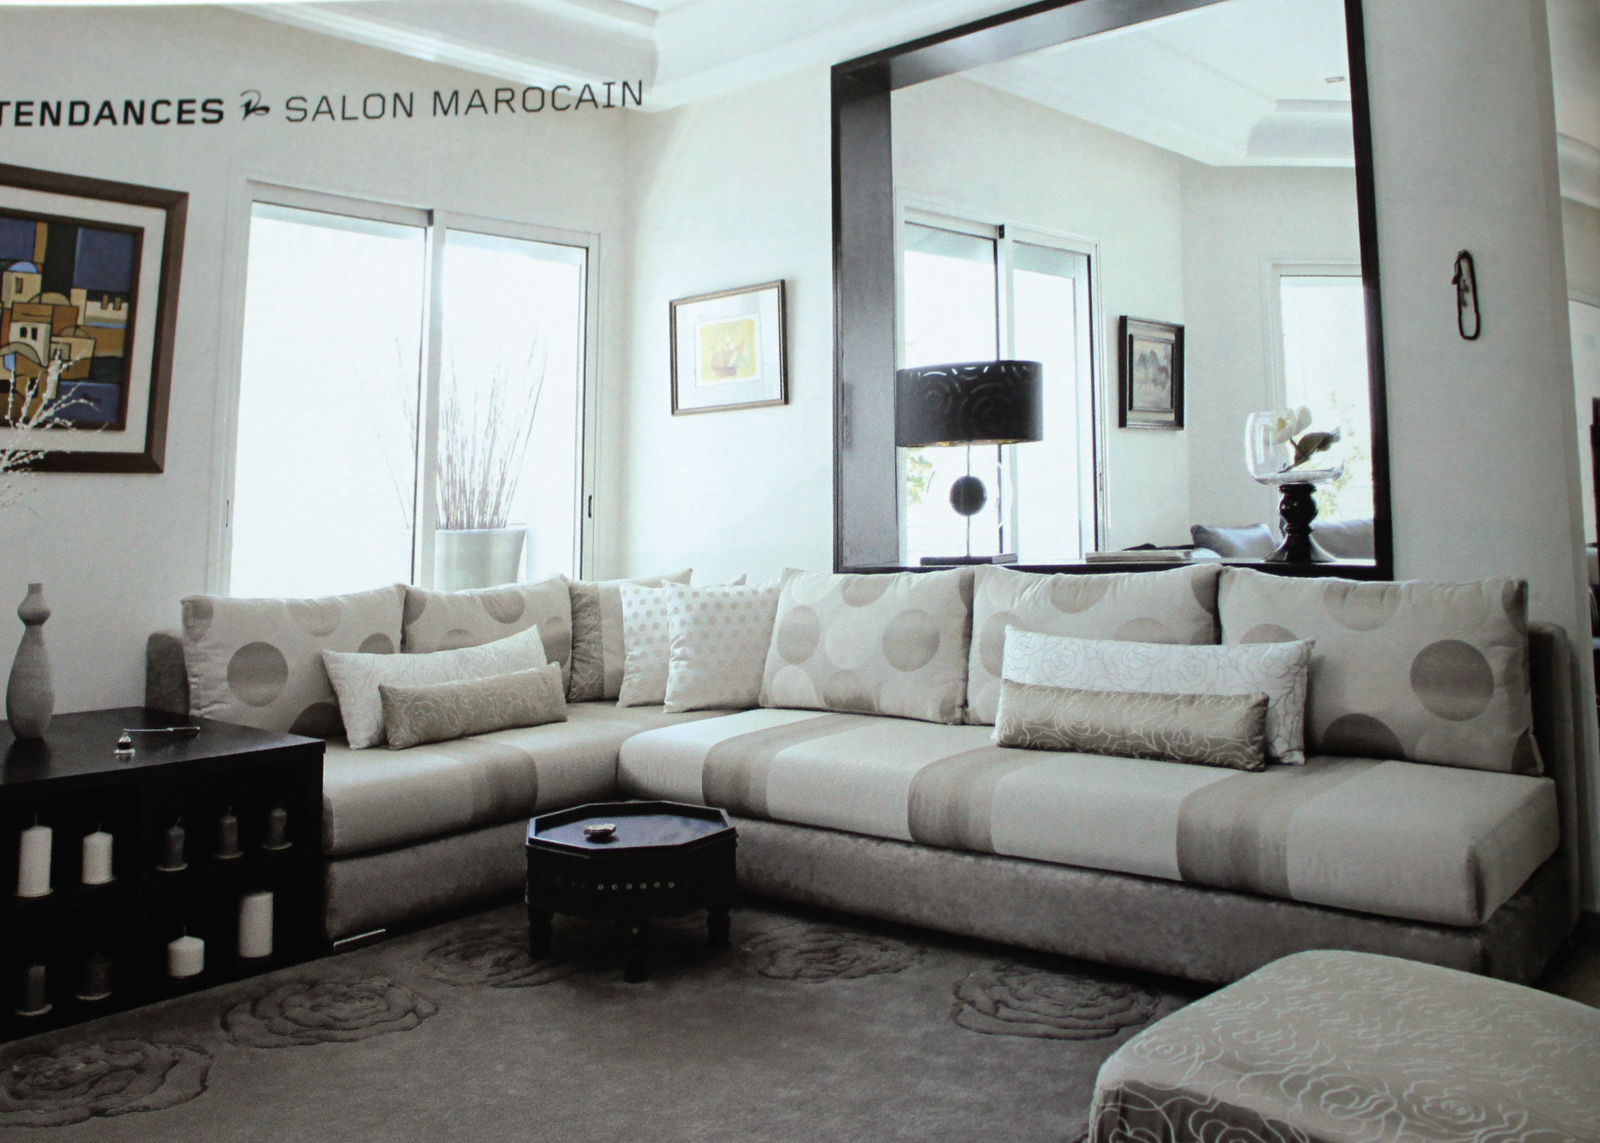 Cherry pie the salon marocain - Salon moderne ...